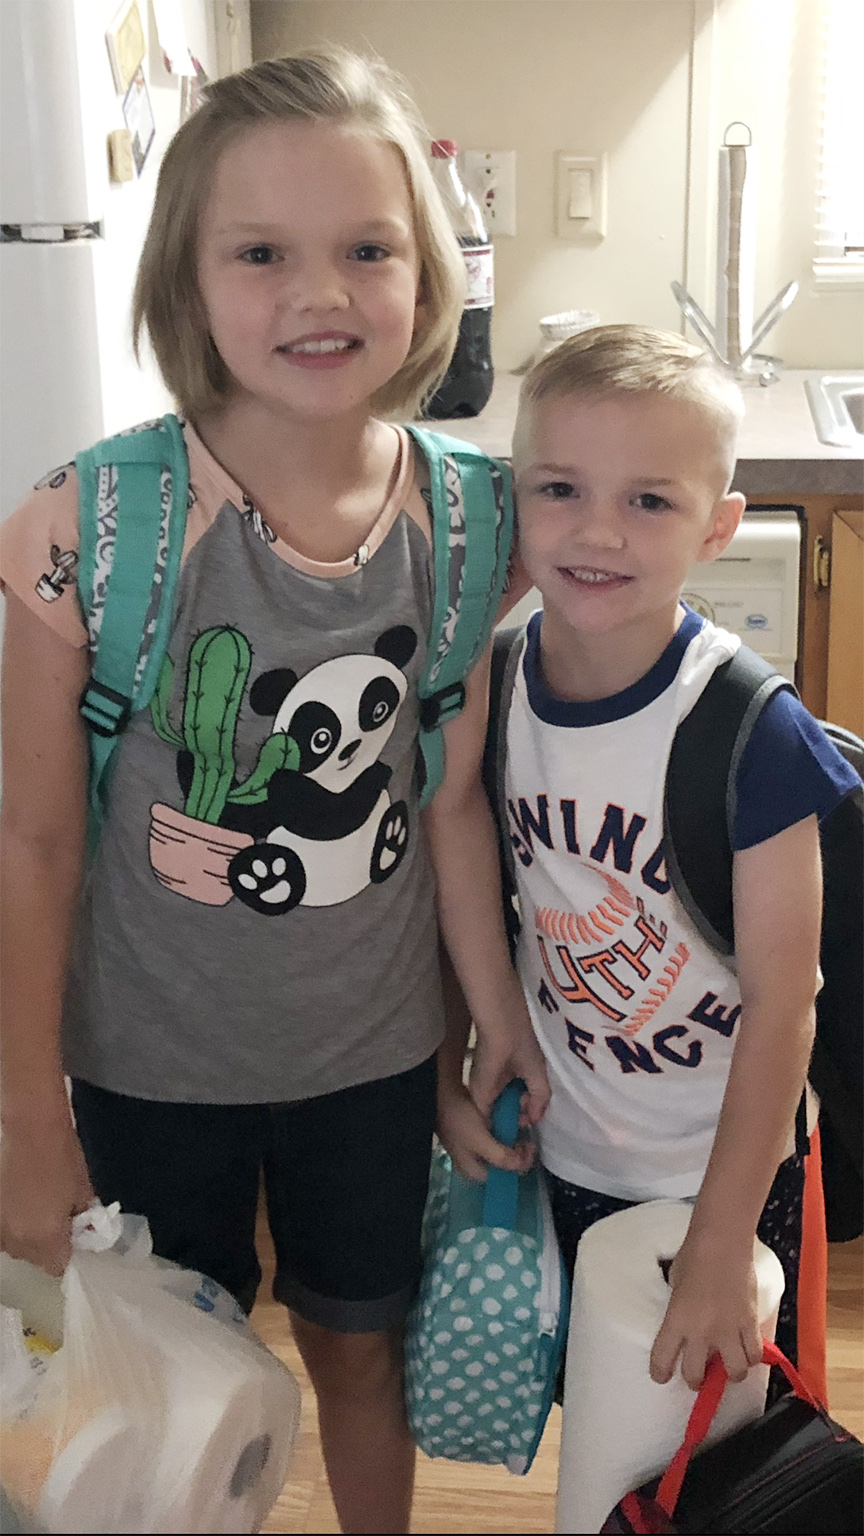 Kinley Hoover, fourth grade, Southwood Elementary School; Ethan Hoover, first grade, Southwood